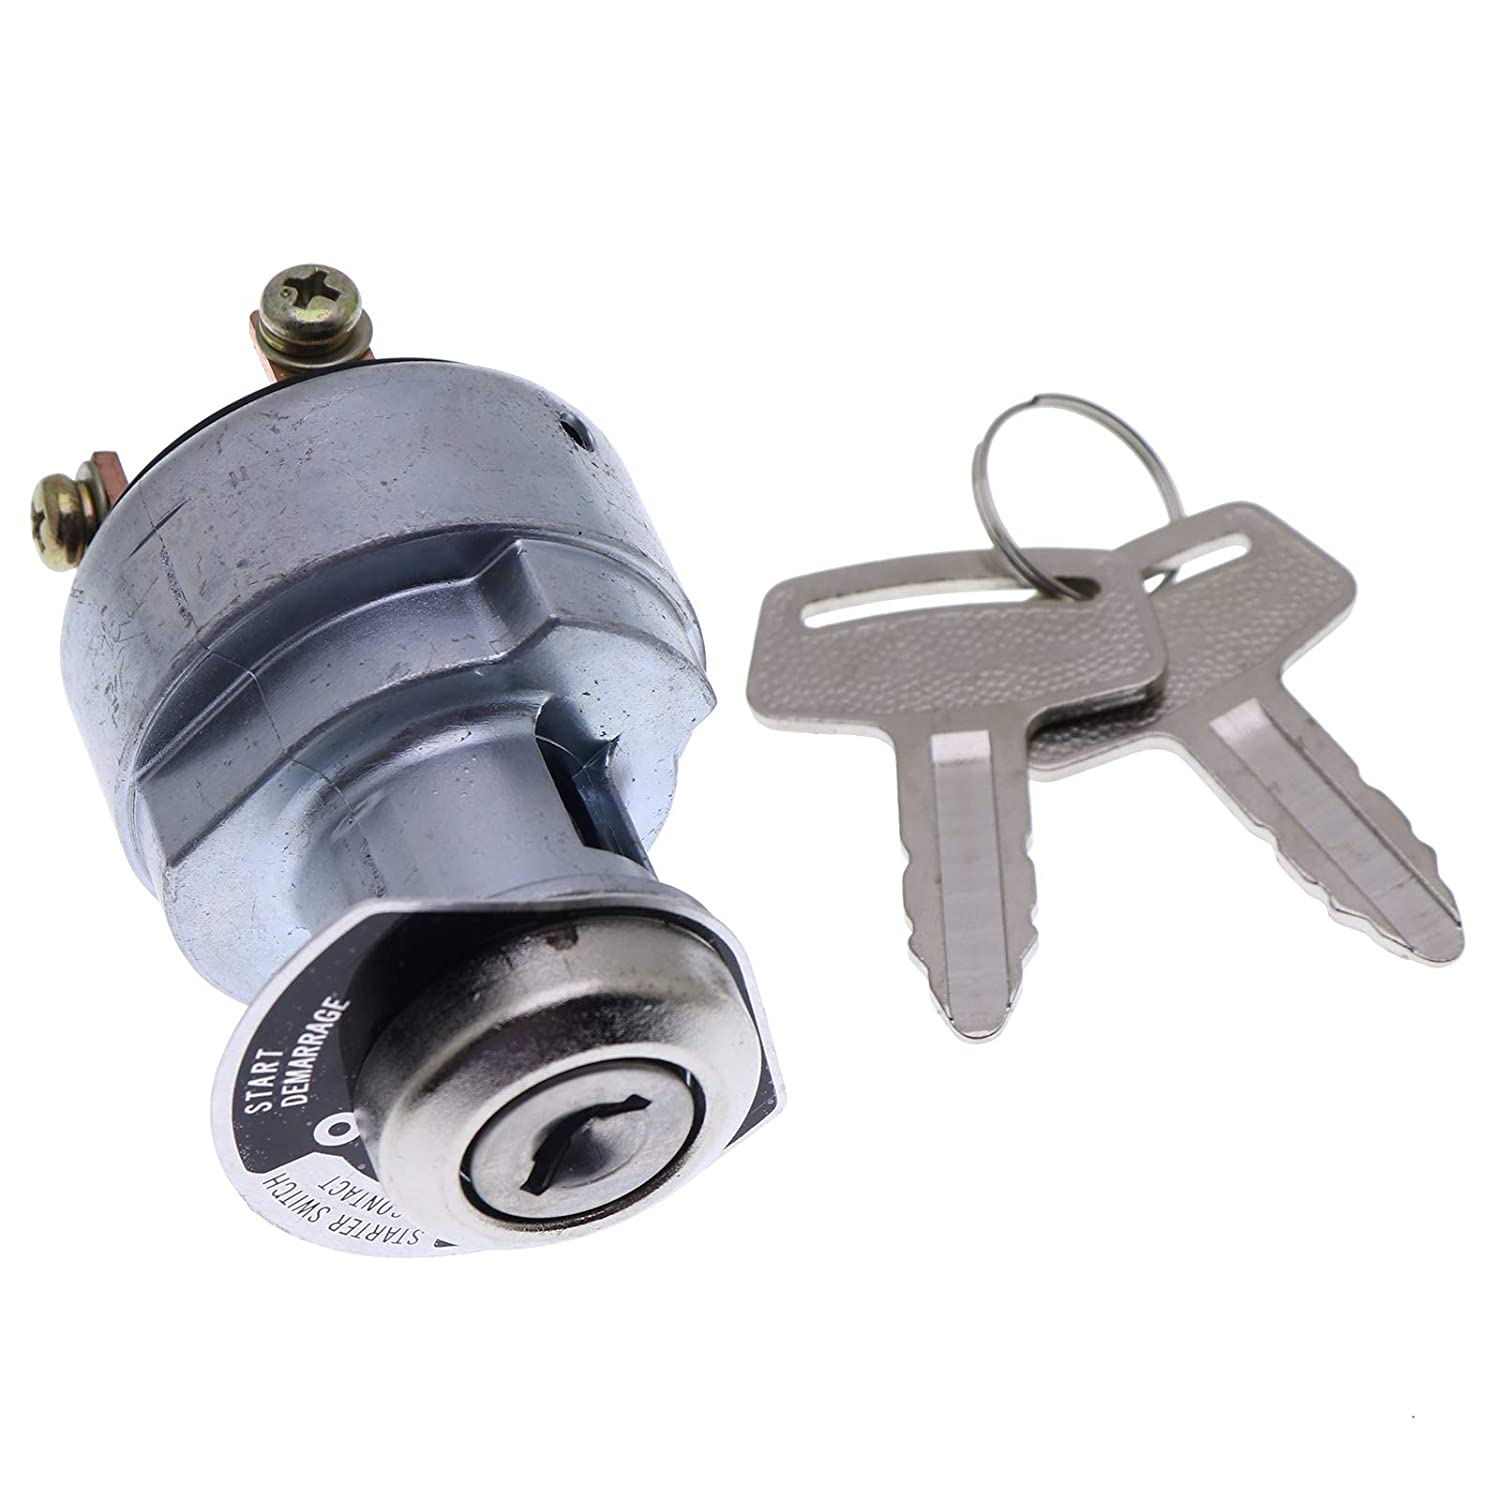 zt truck parts Ignition Switch 1E013-63590 183827 7960-5 Fit for Kubota D1005 D1105 V1205 D1305 D722 D902 V1505 V2003 Grasshopper 725 725G2 325 932 432 729 729G2 729T6 329 722D 722D2 722DT6 322D